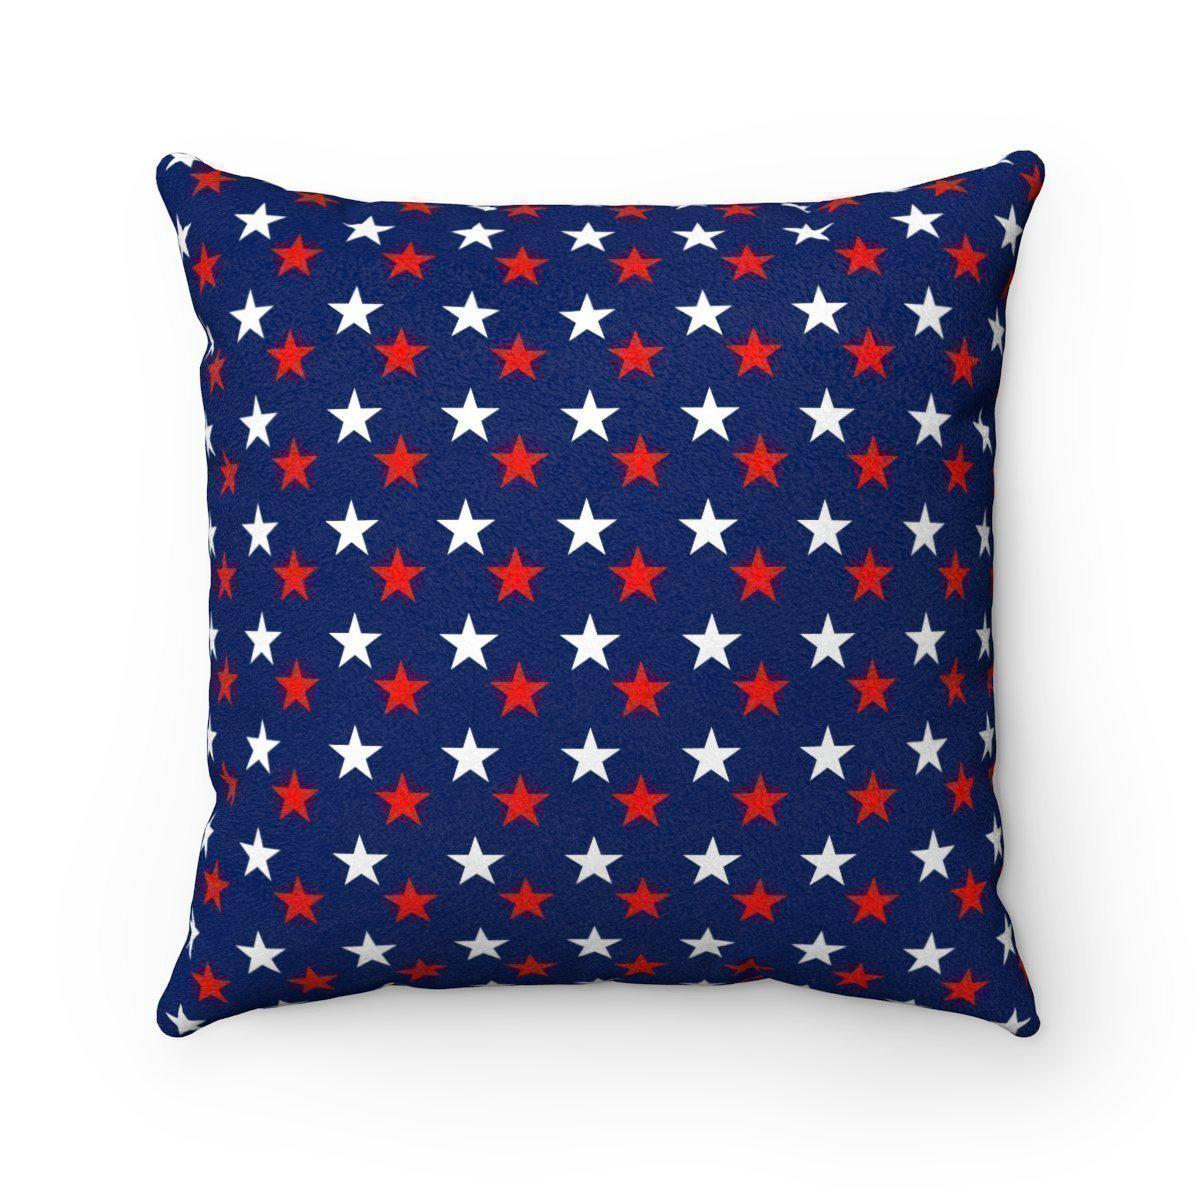 4th of July, microfiber double-sided decorative pillow w/insert-Home Decor - Decorative Accents - Pillows & Throws - Decorative Pillows-Maison d'Elite-14x14-Très Elite